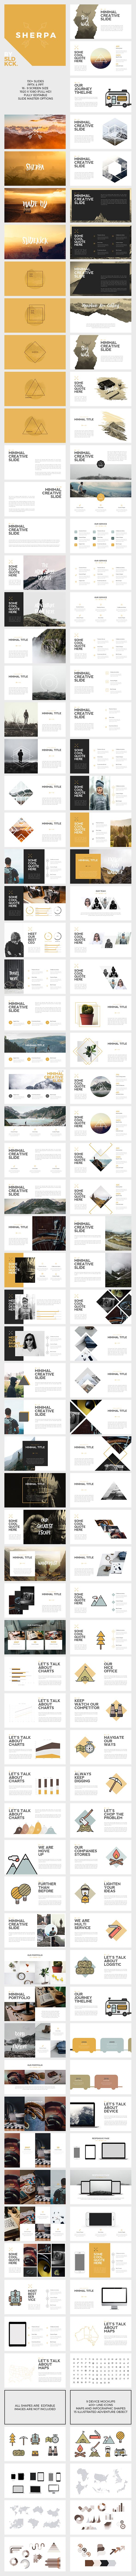 Cool Hipster Powerpoint Presentation Template • Click here to download ! http://graphicriver.net/item/sherpa-hipster-powerpoint-presentation/15721262?ref=pxcr